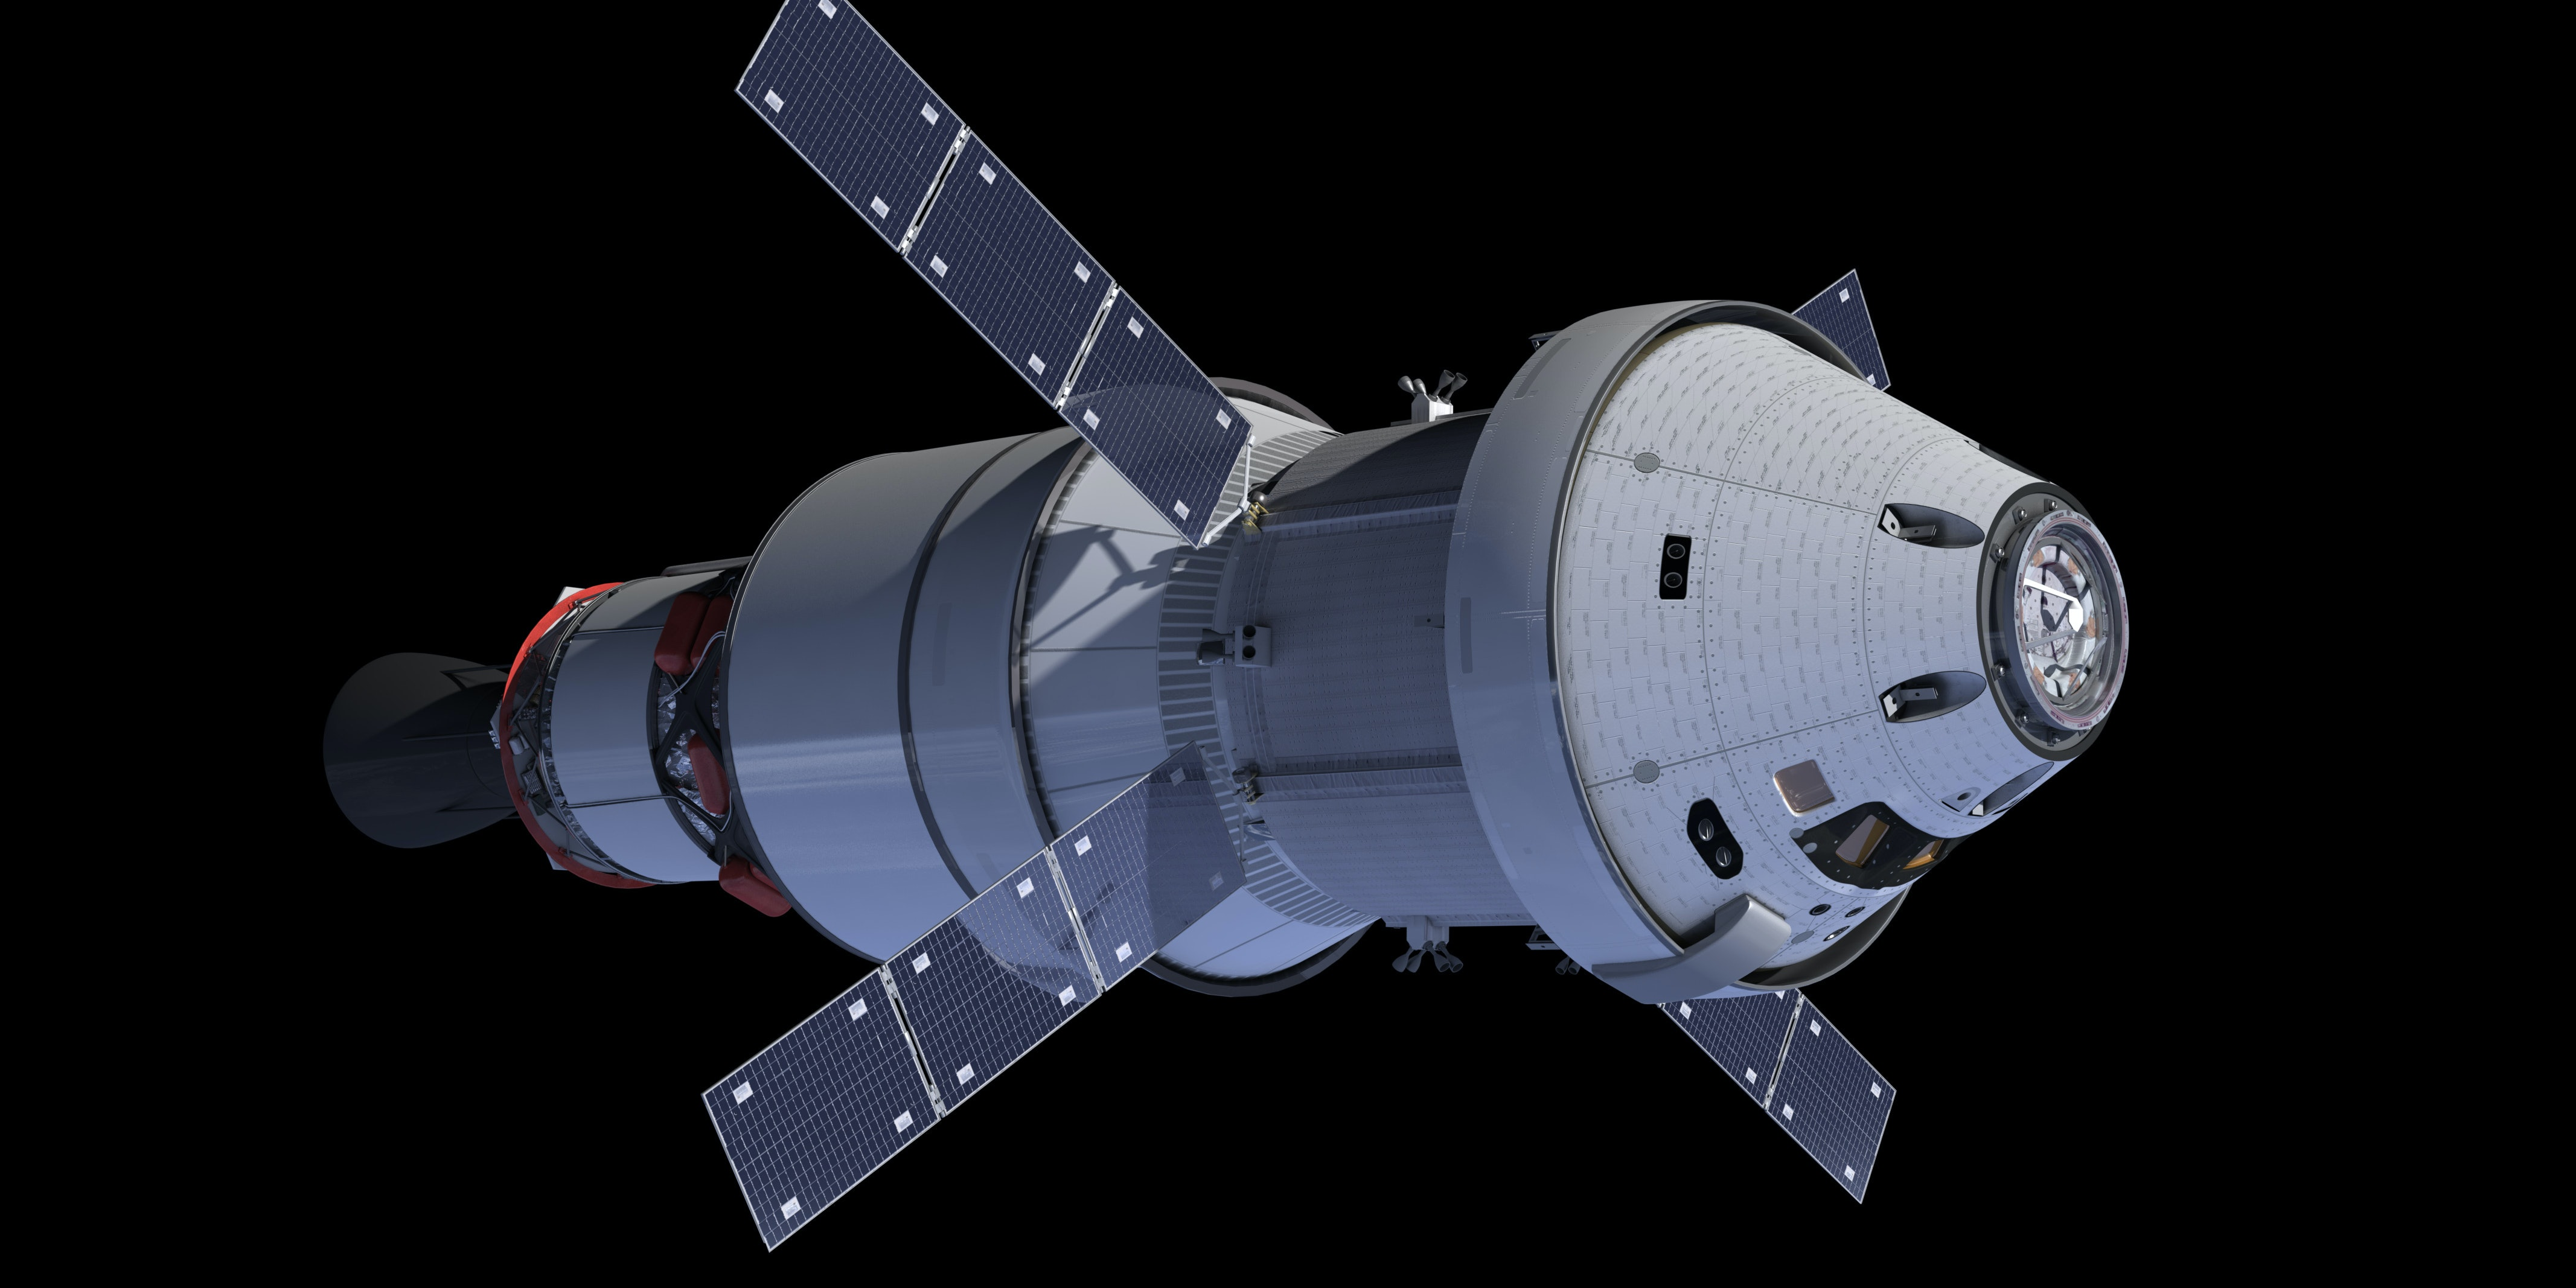 Concept art for the Orion spacecraft.